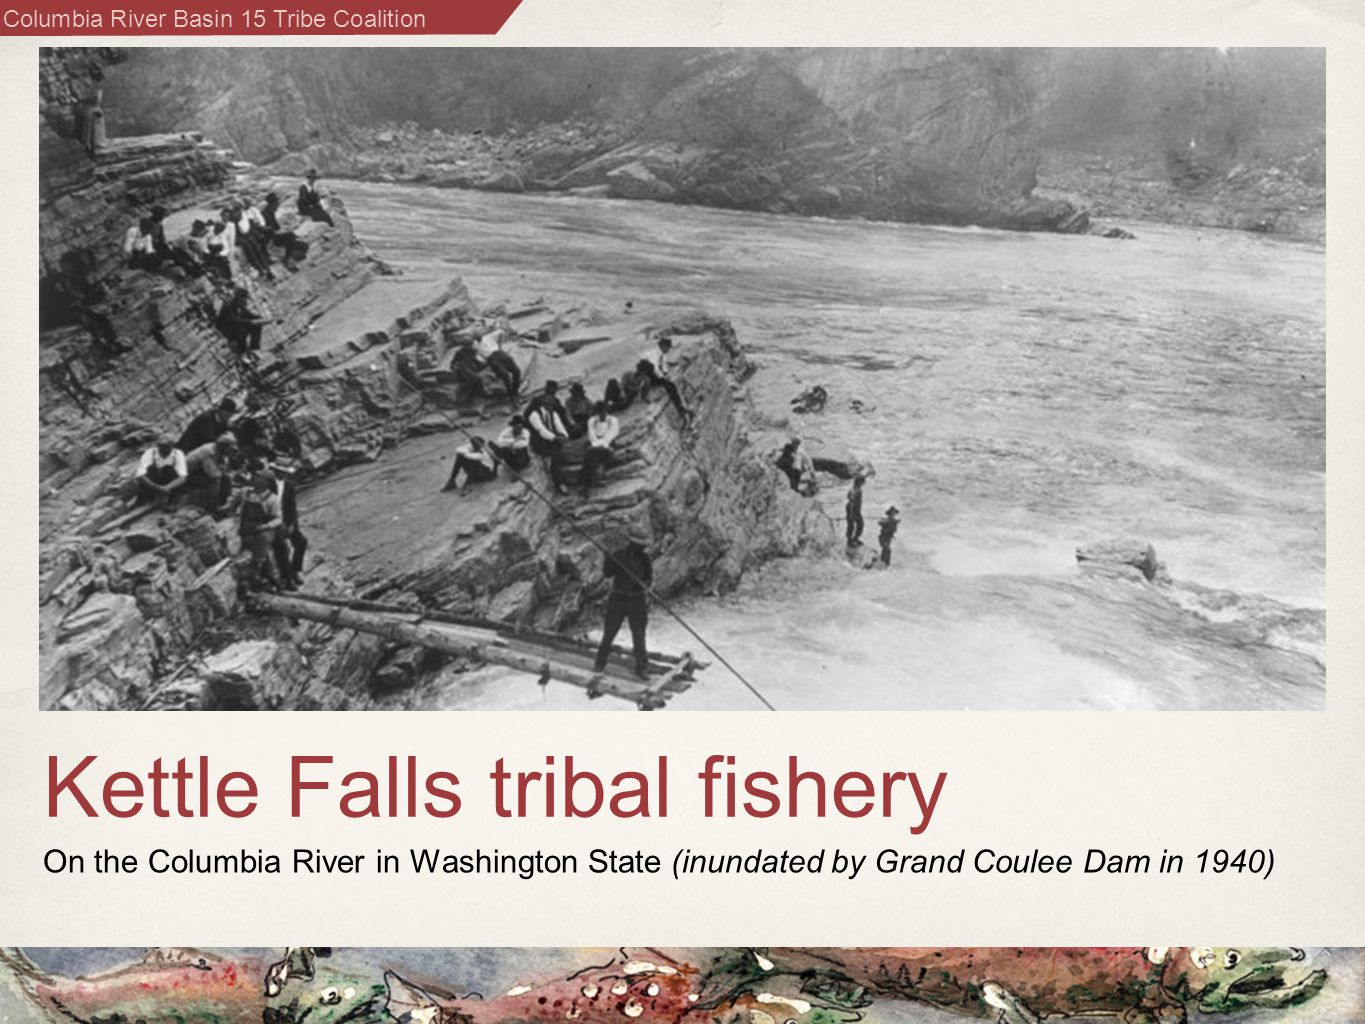 Columbia River Basin 15 Tribe Coalition Kettle Falls tribal fishery On the Columbia River in Washington State (inundated by Grand Coulee Dam in 1940)